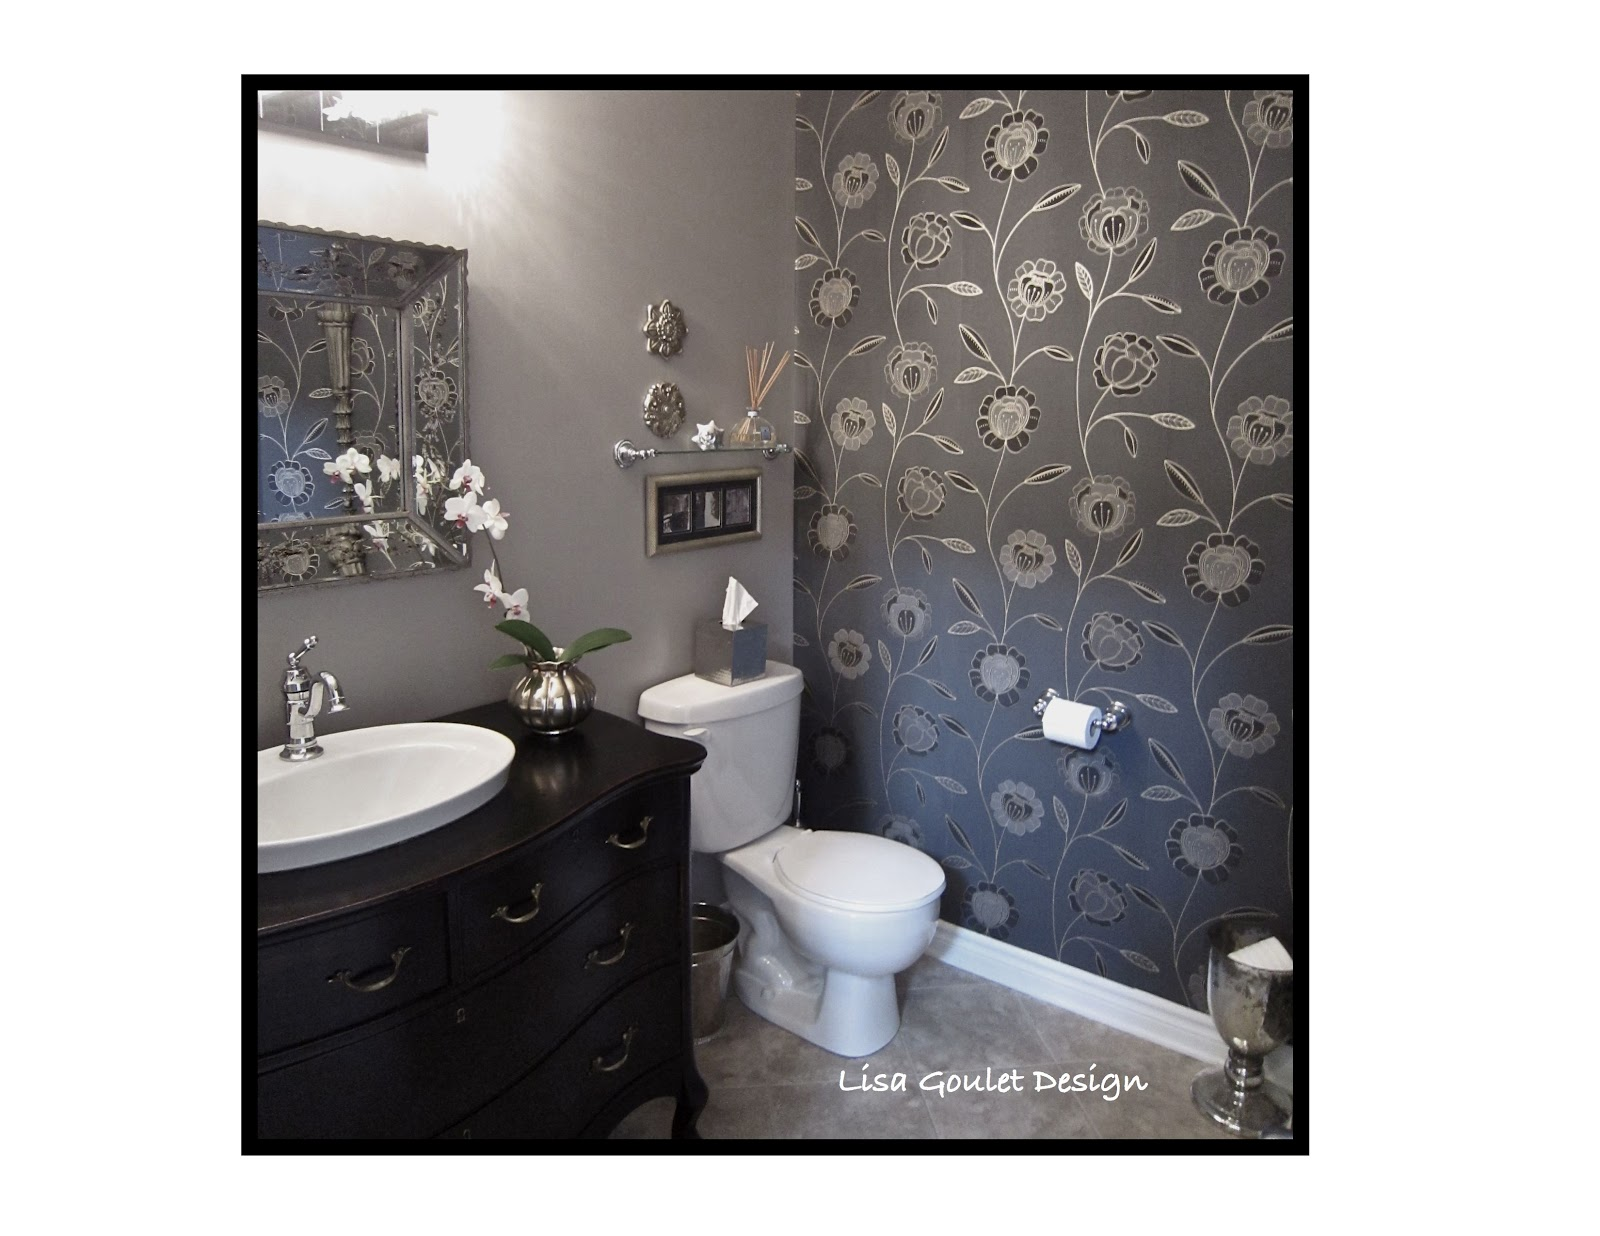 Toilet design toilet design room design ideas room for Toilet room decor